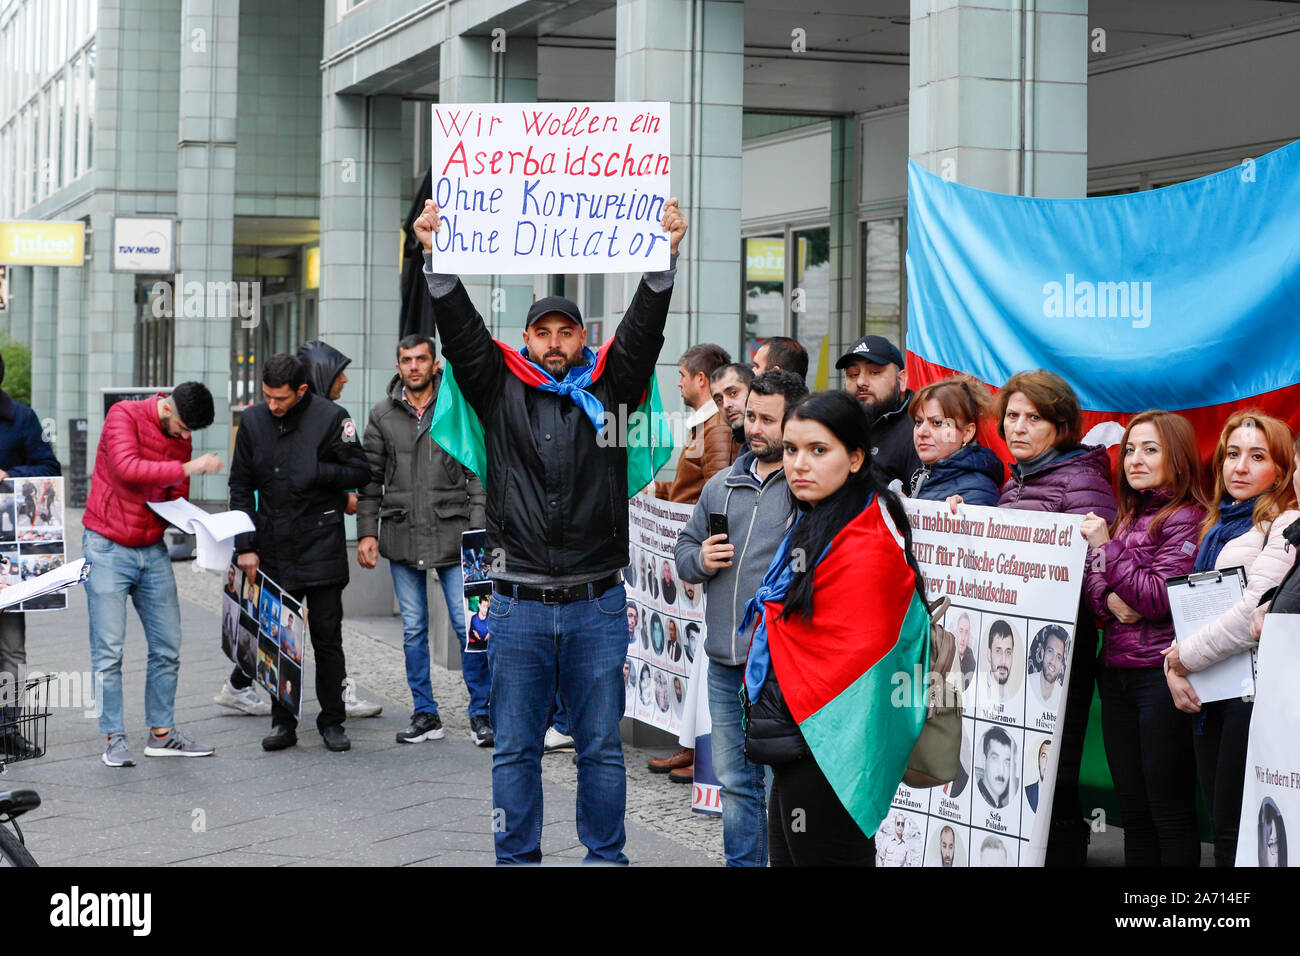 Protest Against Human Rights Violations In The Republic Of Azerbaijan Stock Photo Alamy